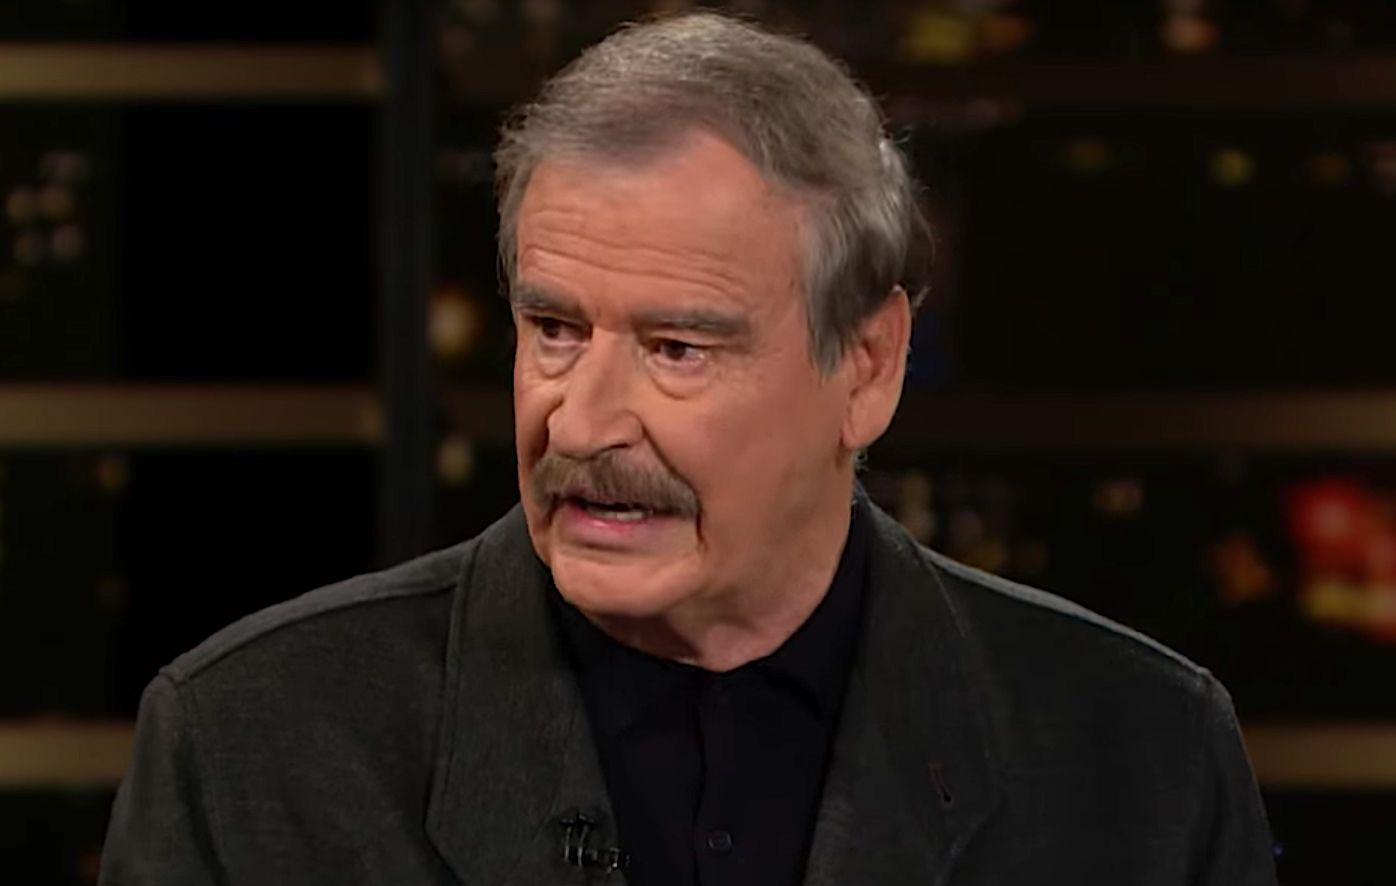 Ex-Mexican President: Mass Shootings Are Consequence Of Racism Like Trump's